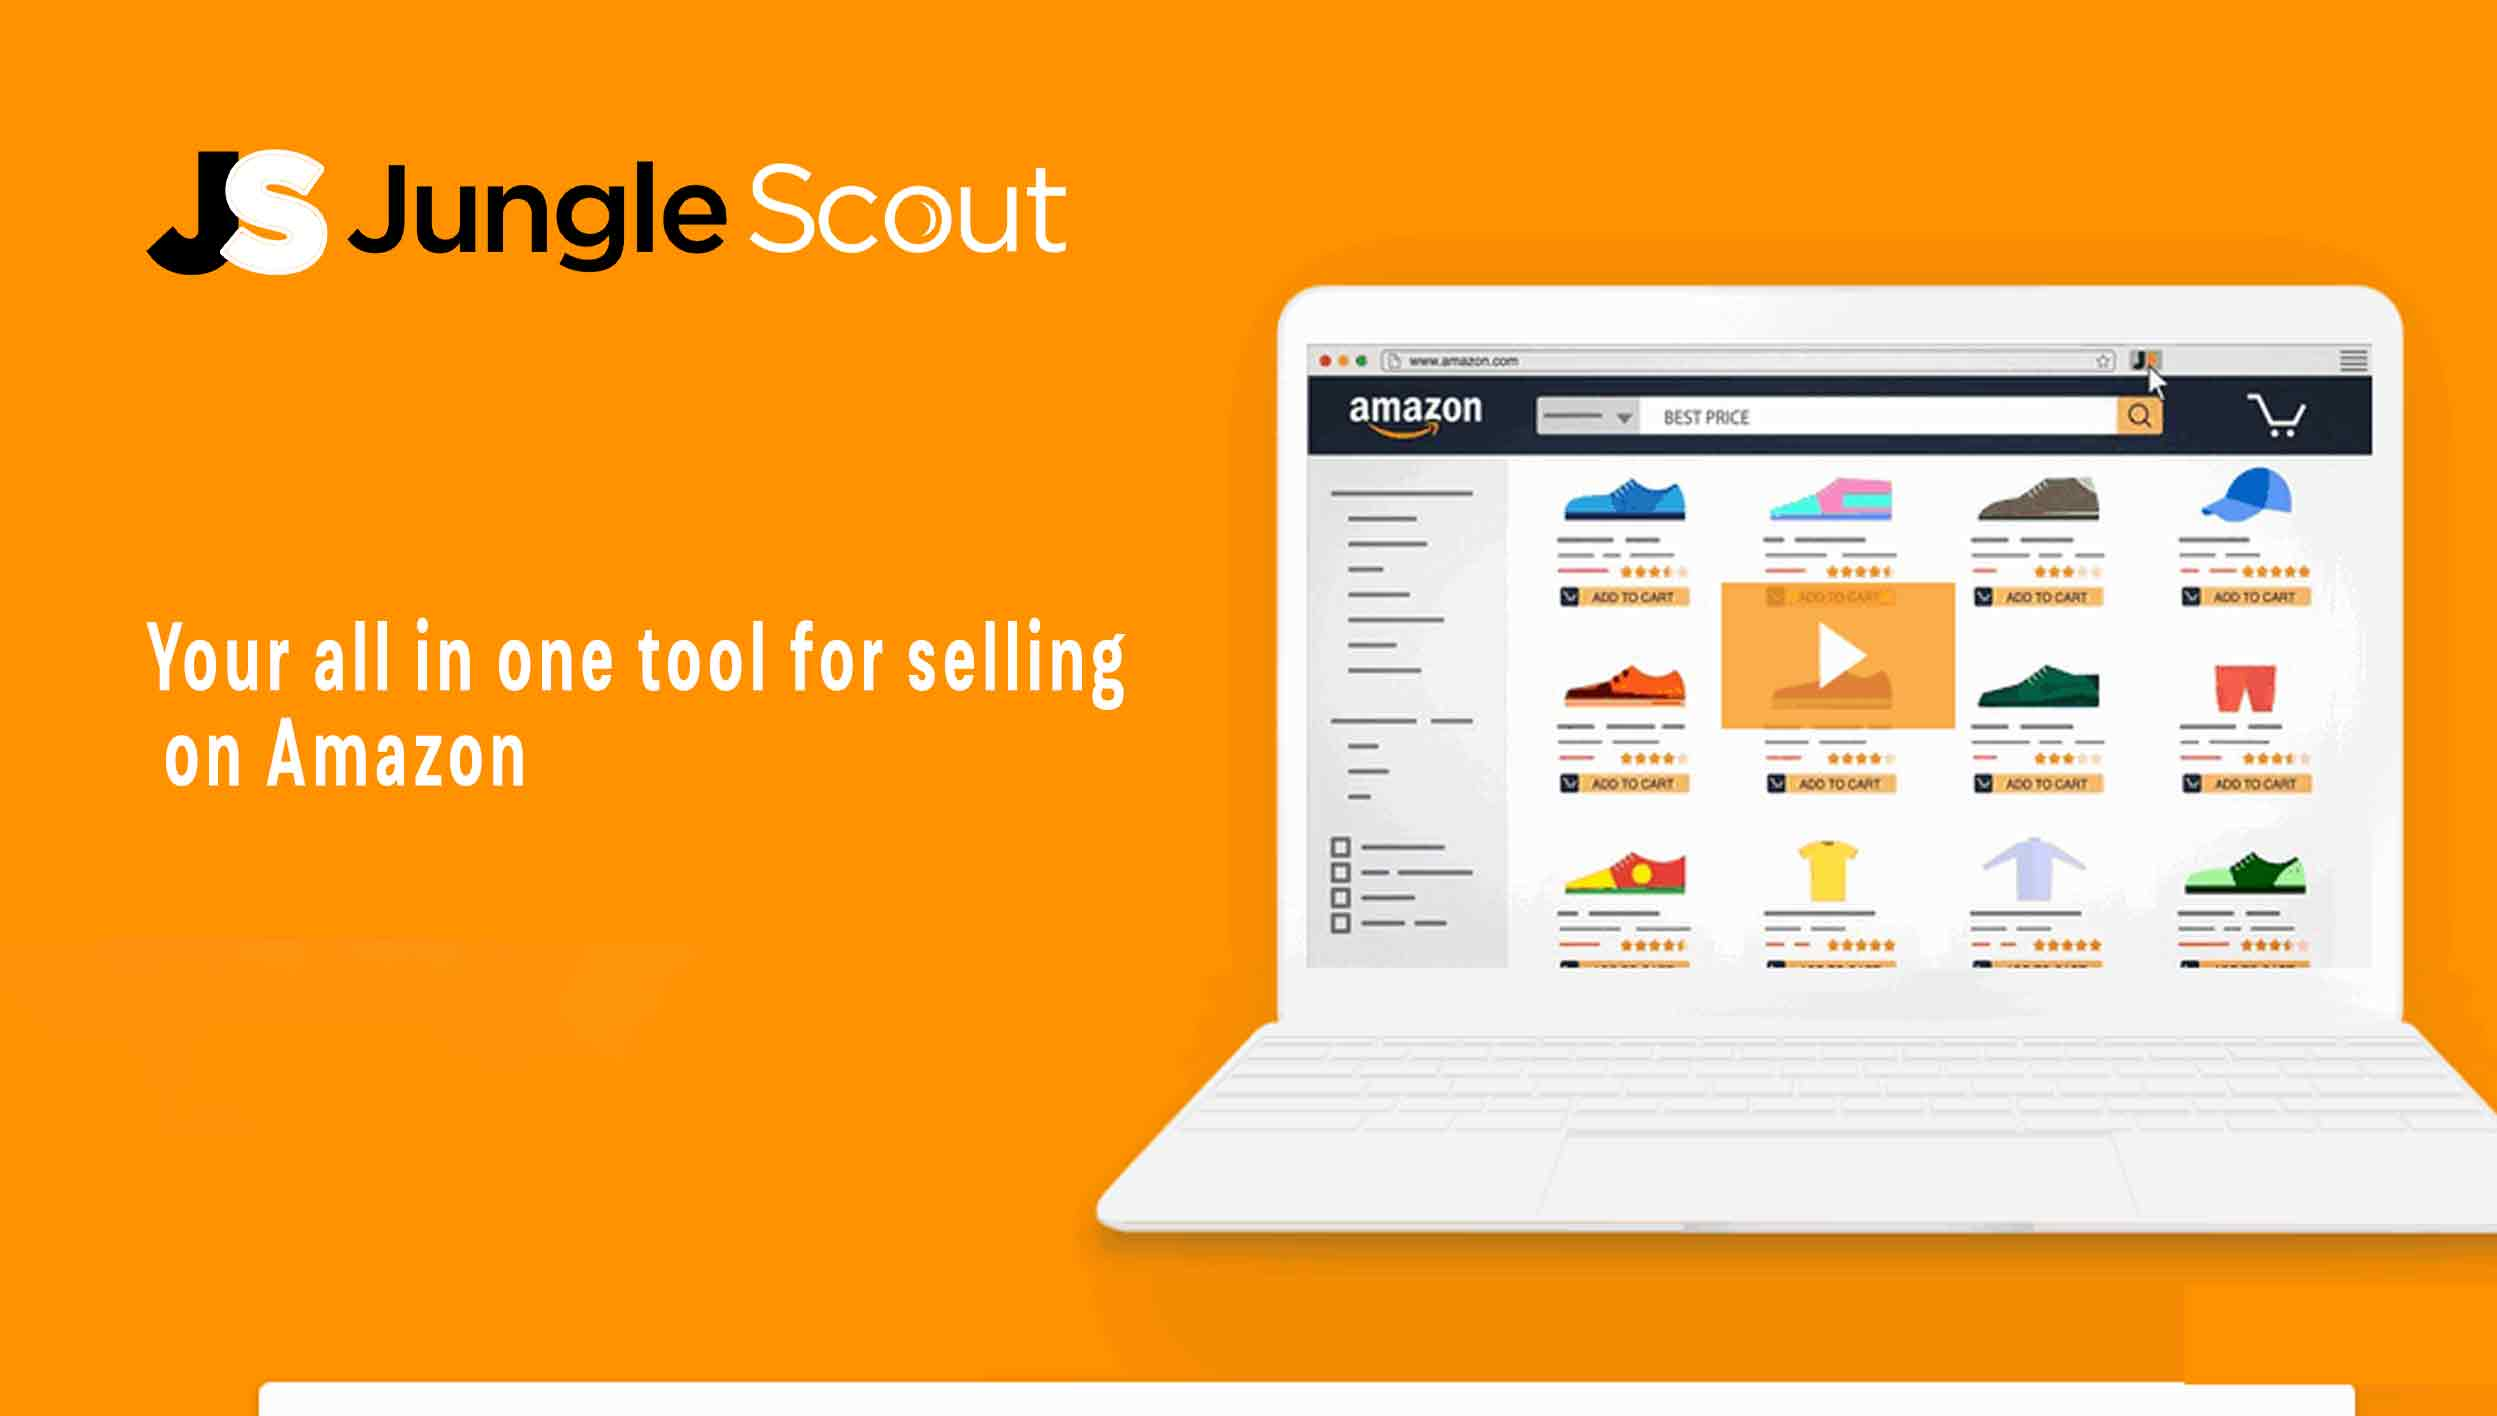 jungle-scout-tools